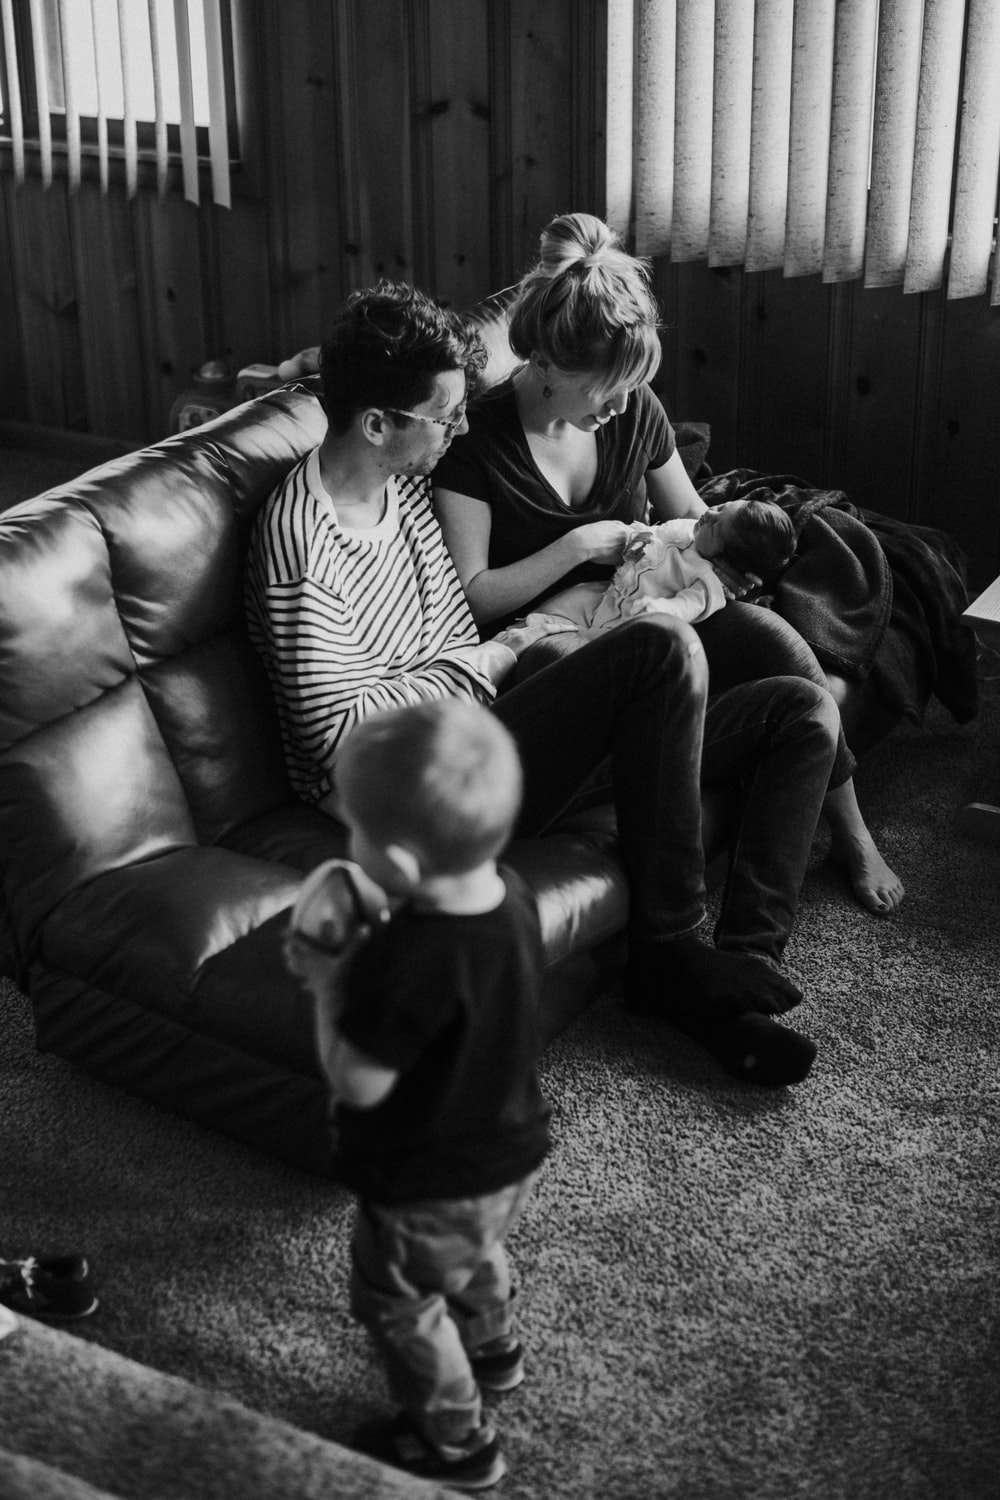 grayscale man and woman sitting on couch carrying baby